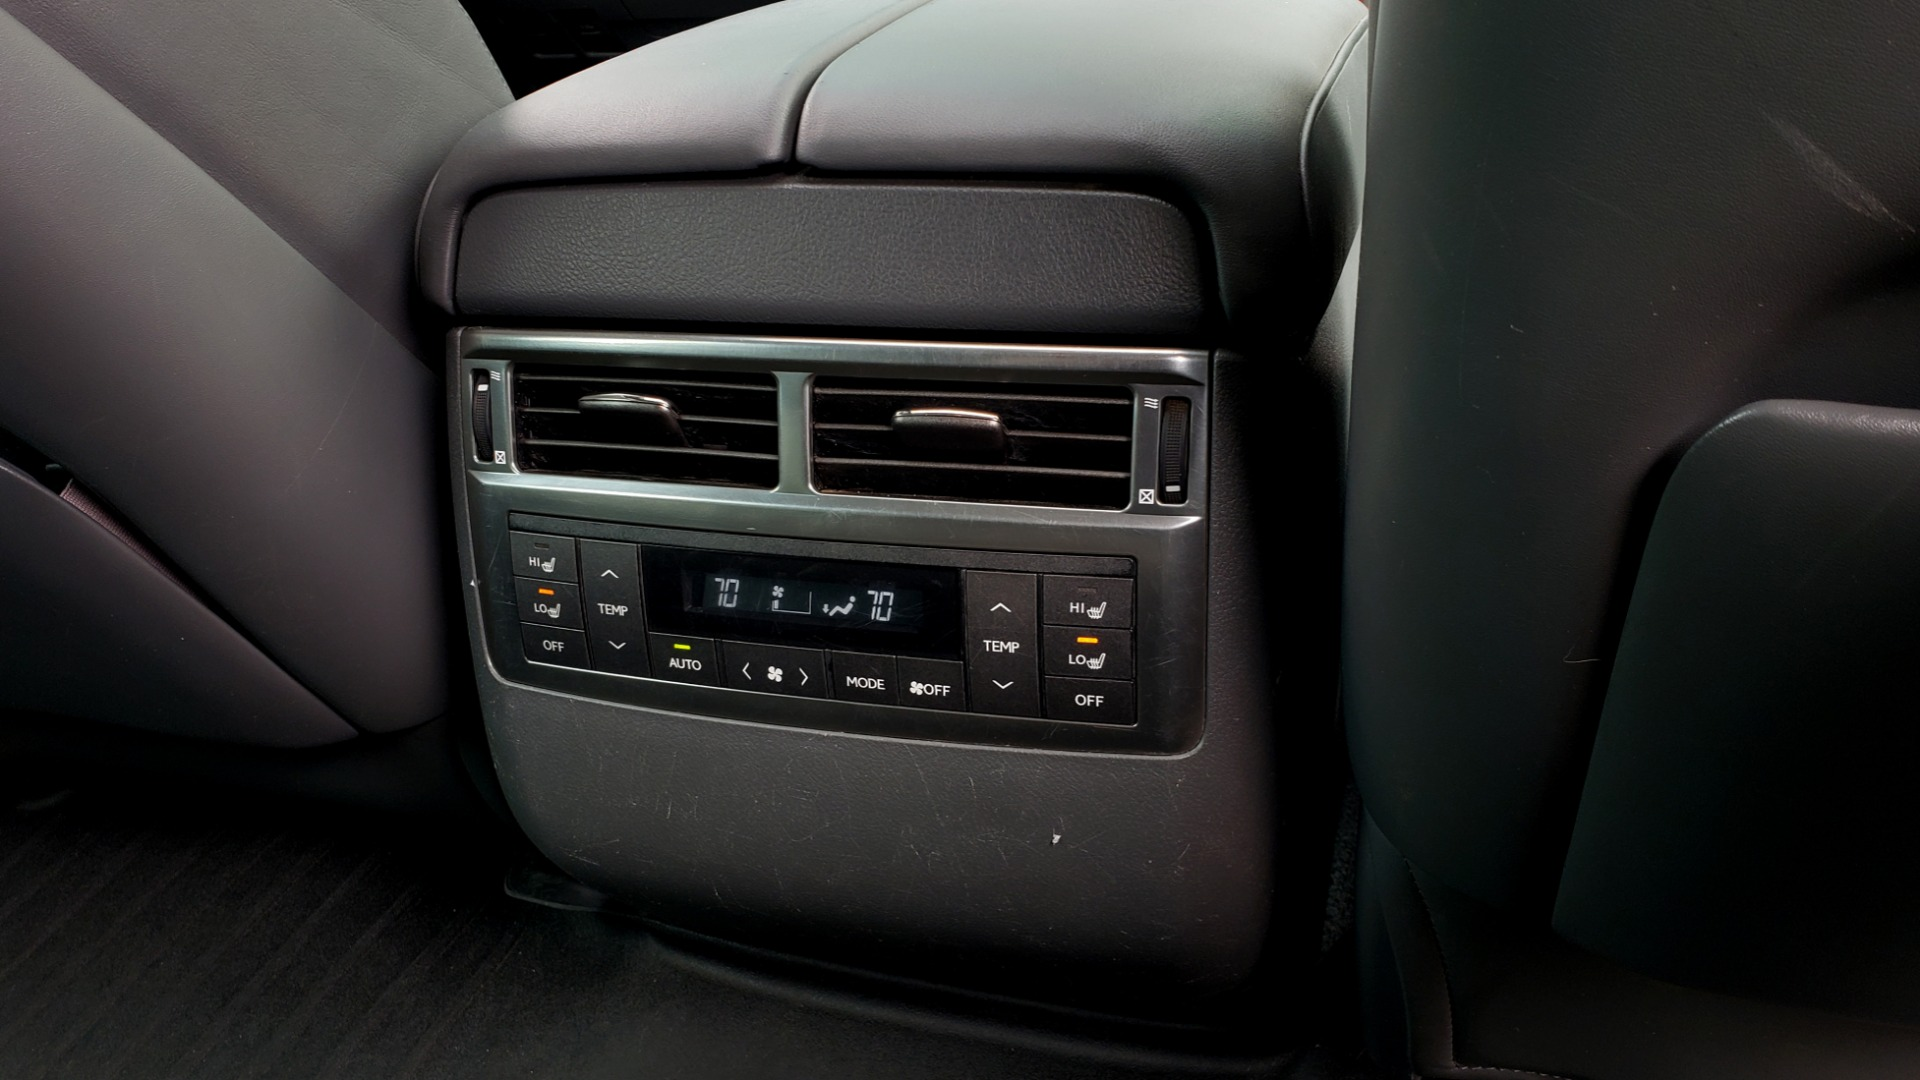 Used 2008 Lexus LX 570 4WD / TECH PKG / NAV / SUNROOF / MARK LEVINSON / PARK ASST for sale $22,995 at Formula Imports in Charlotte NC 28227 81